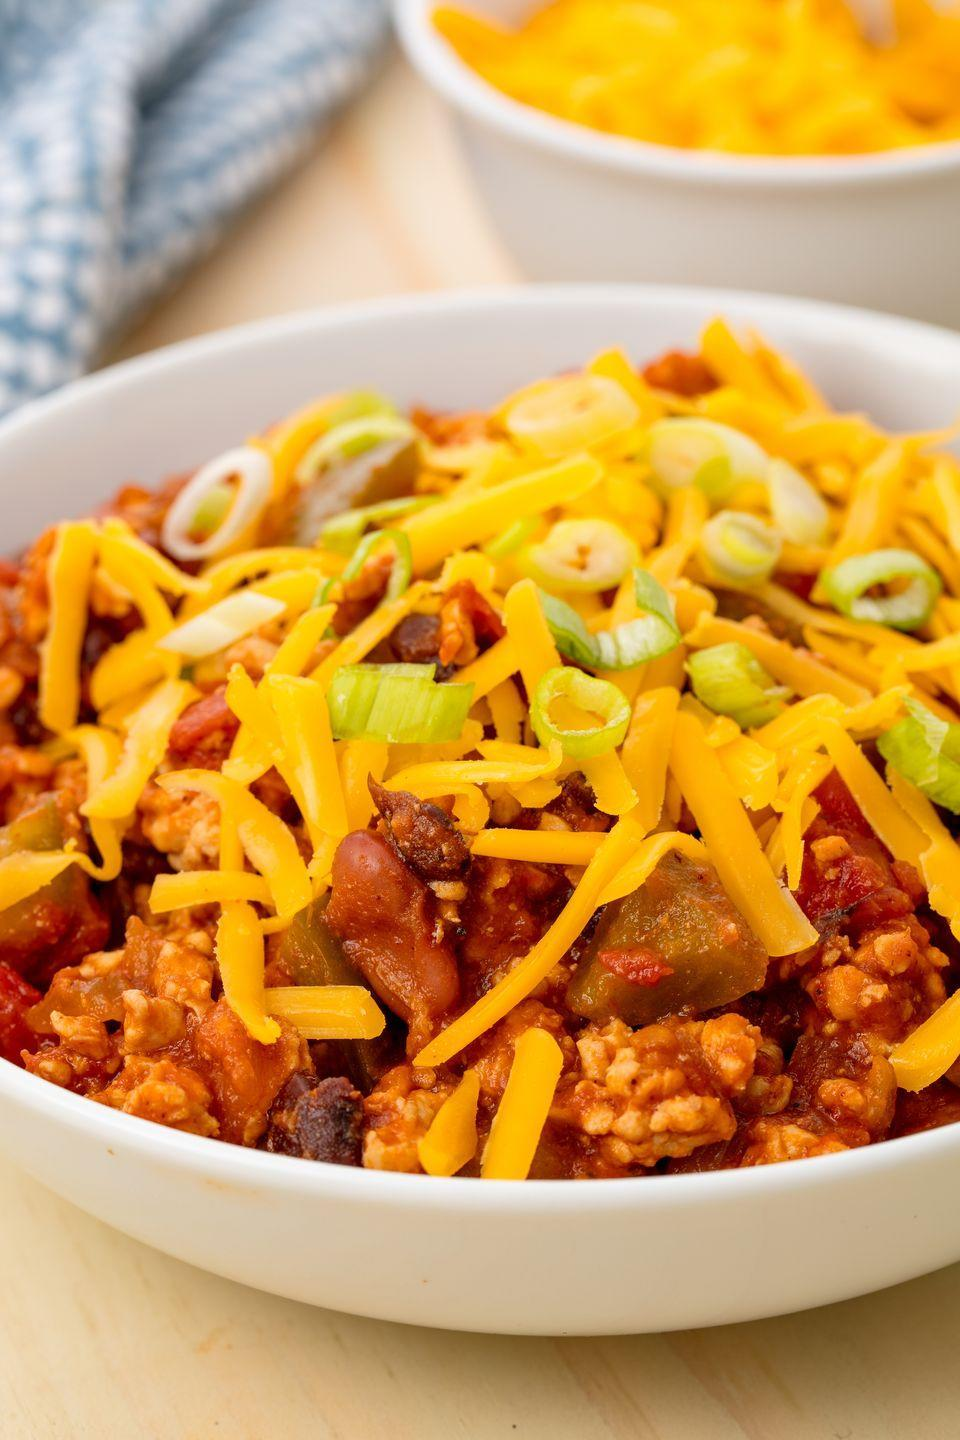 """<p>Warm up after the tailgate with some turkey chili. </p><p>Get the recipe from <a href=""""https://www.delish.com/cooking/recipe-ideas/recipes/a55200/easy-turkey-slow-cooker-chili-recipe/"""" rel=""""nofollow noopener"""" target=""""_blank"""" data-ylk=""""slk:Delish"""" class=""""link rapid-noclick-resp"""">Delish</a>.</p>"""